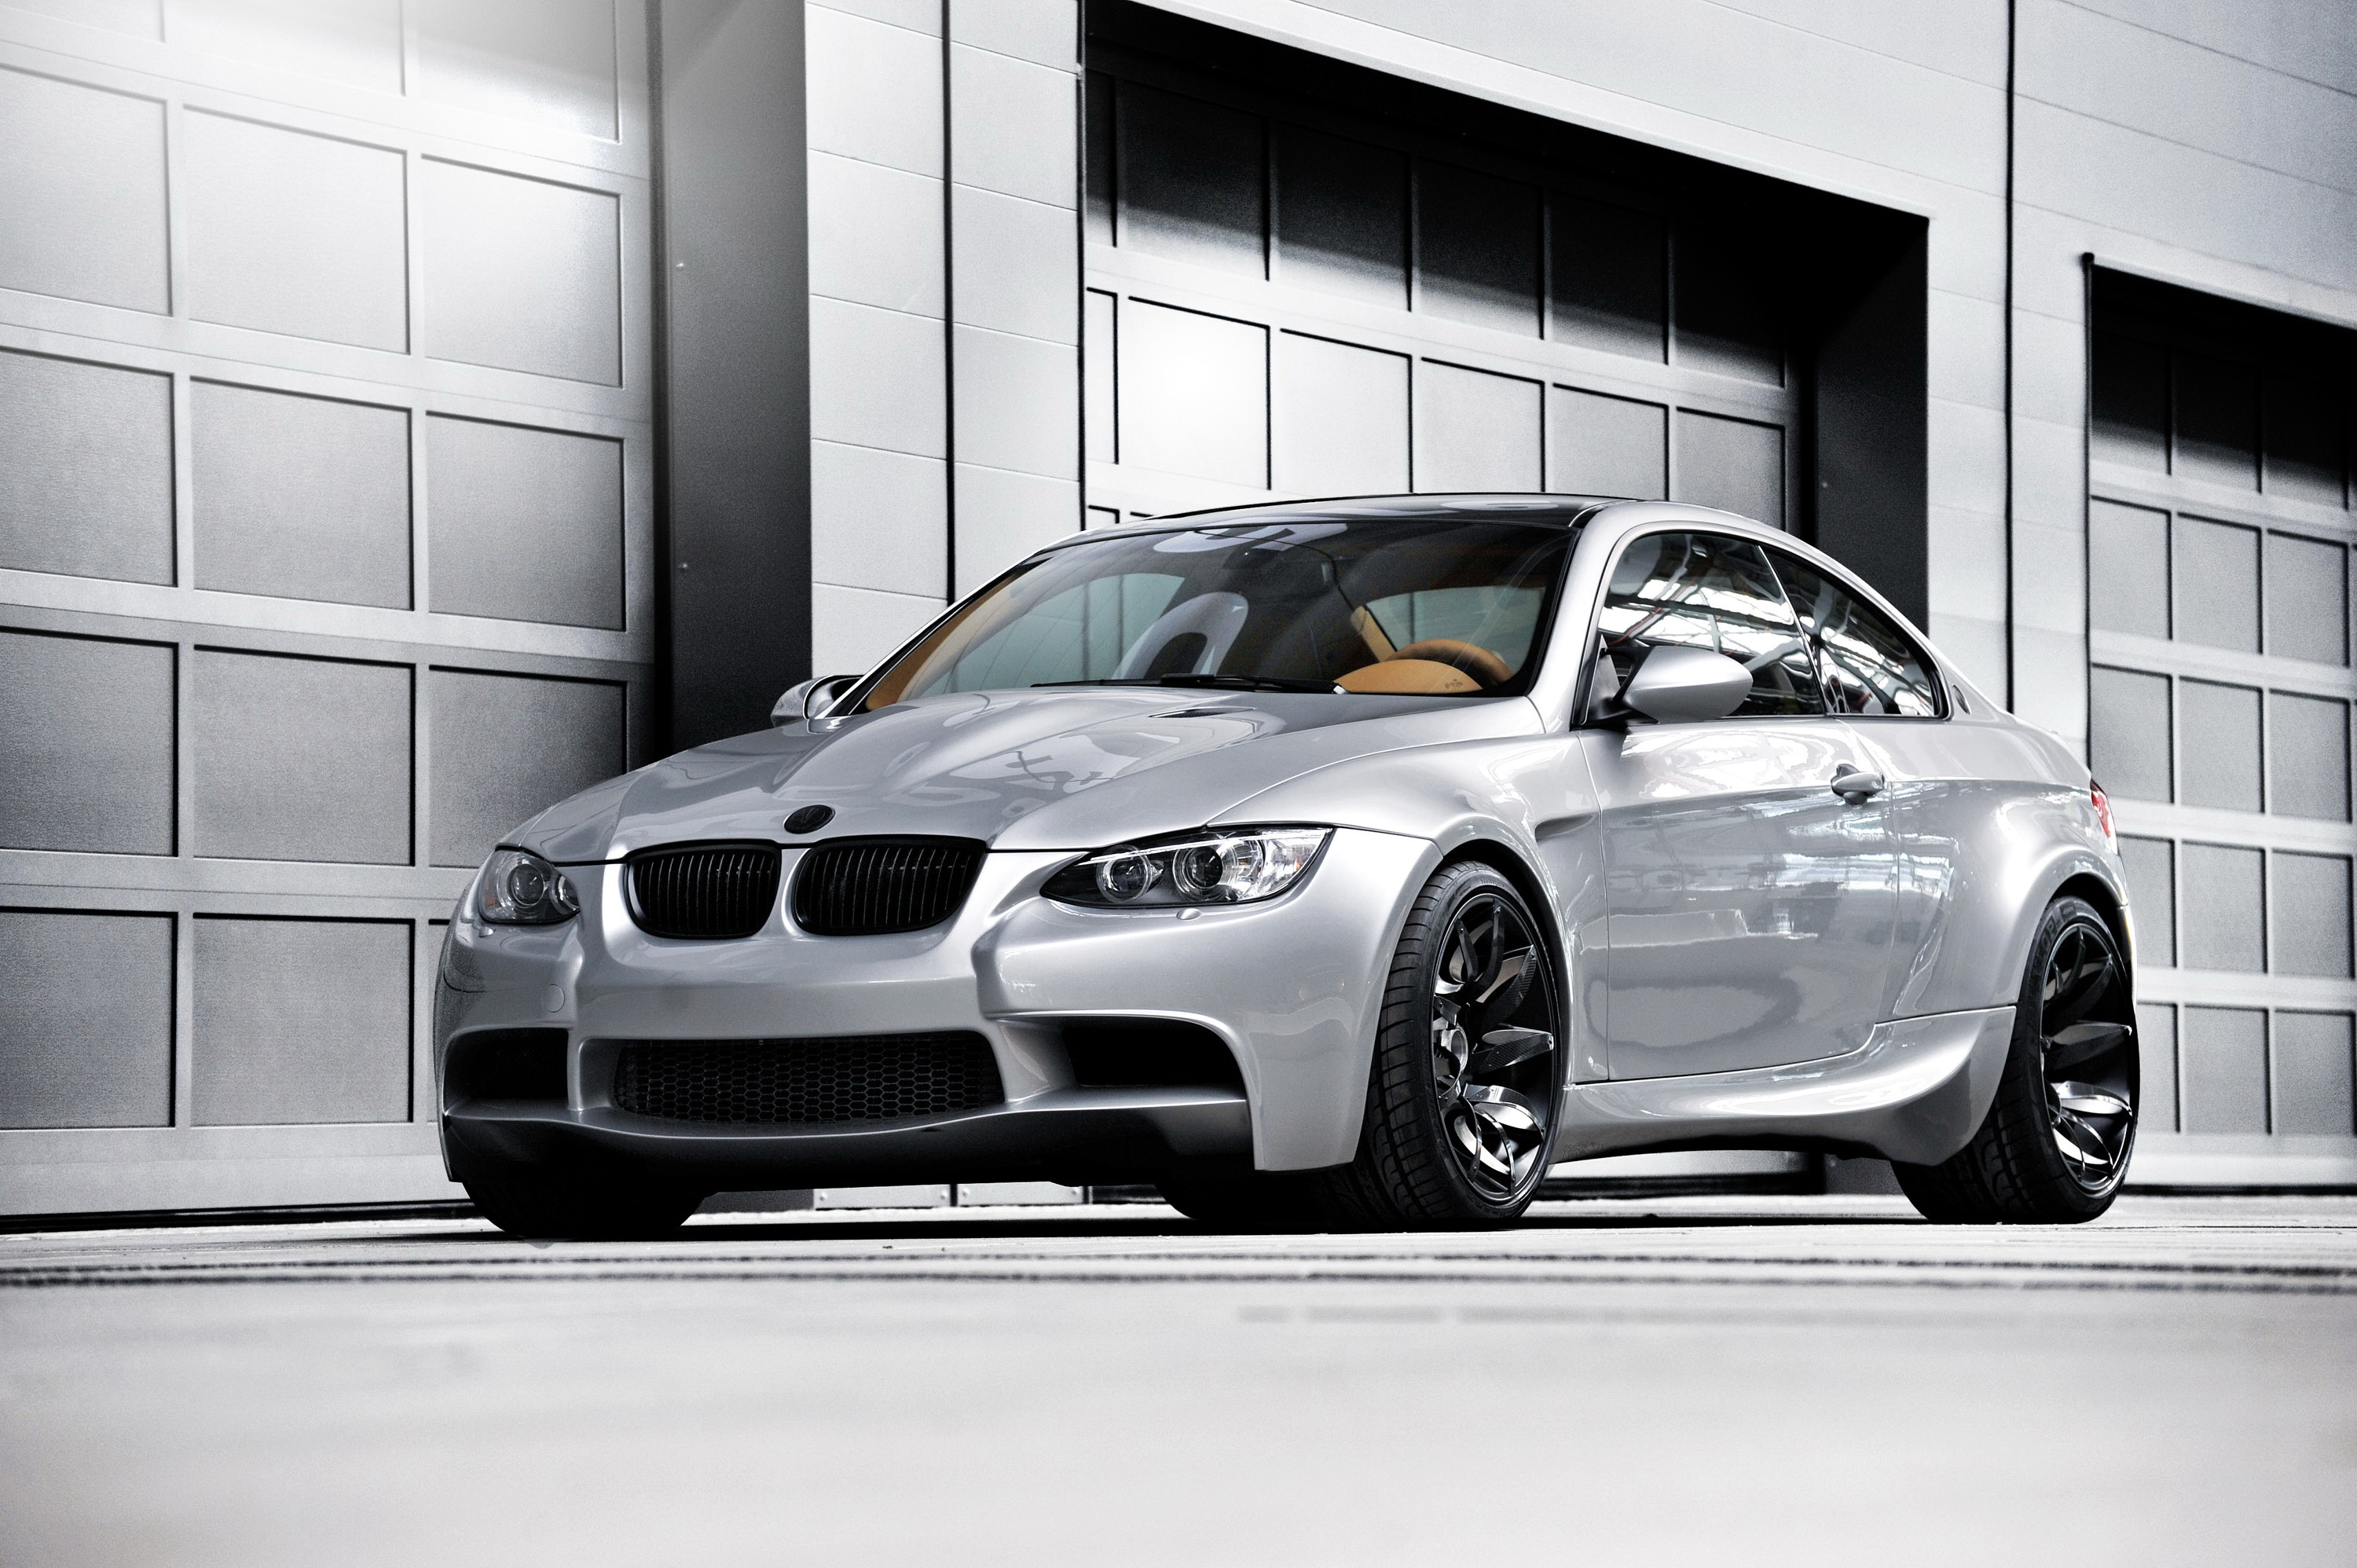 bmw m3 wallpapers pictures images. Black Bedroom Furniture Sets. Home Design Ideas